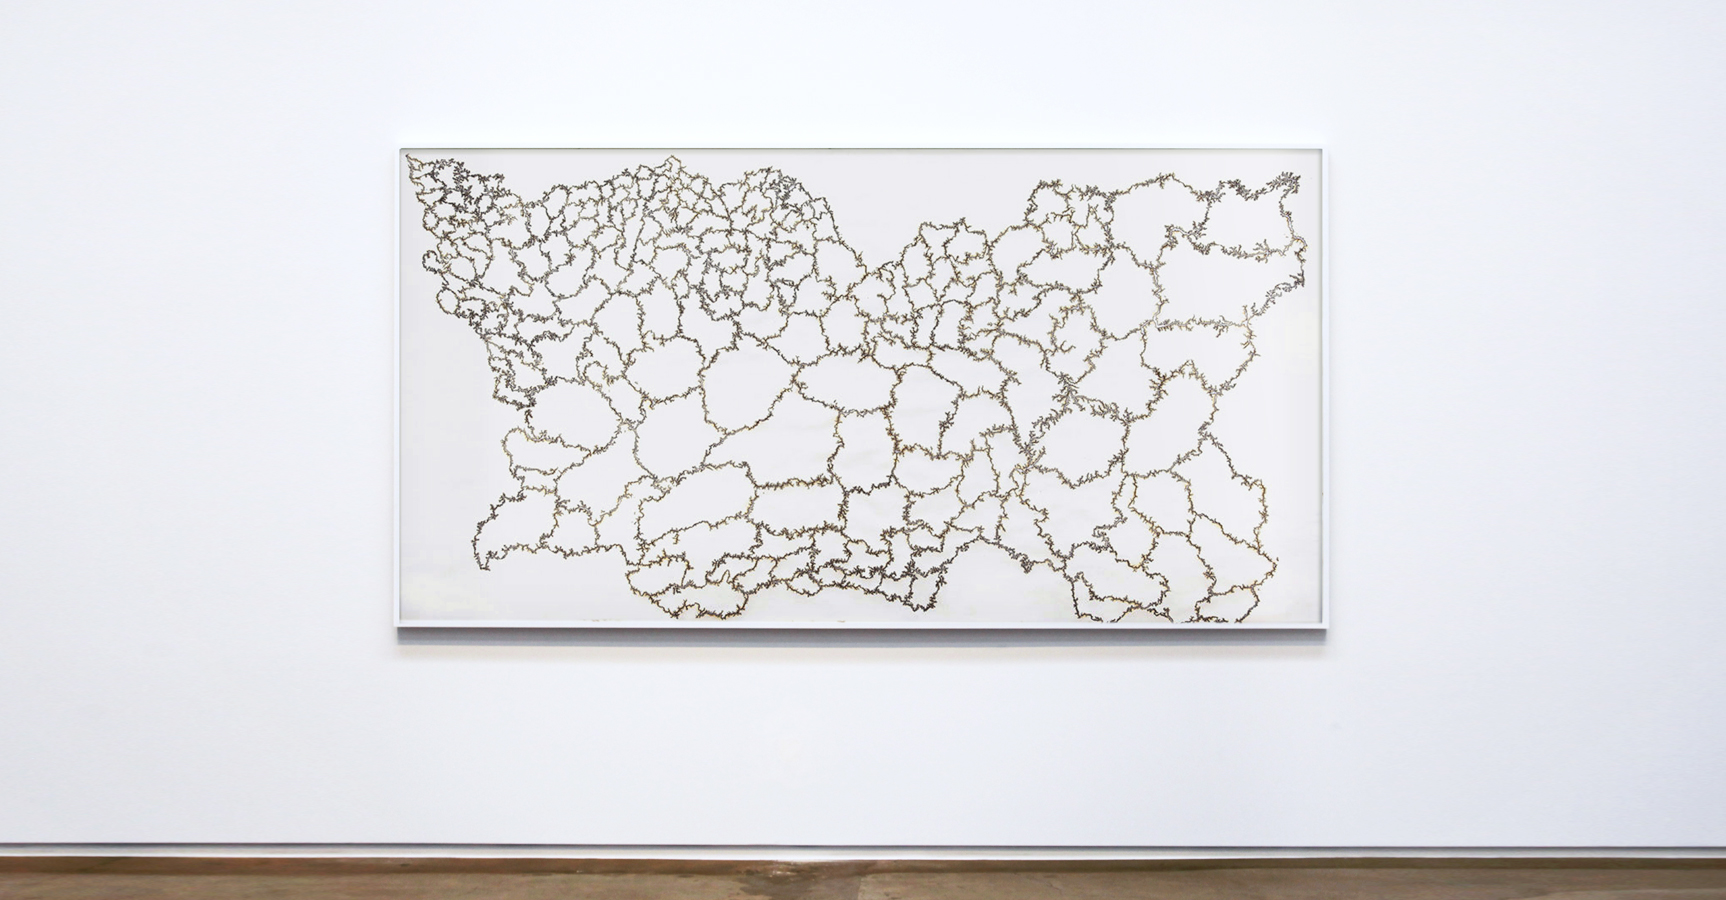 'Cartography of Control', 2014 | Troika (Eva Rucki, Sebastien Noel, Conny Freyer)